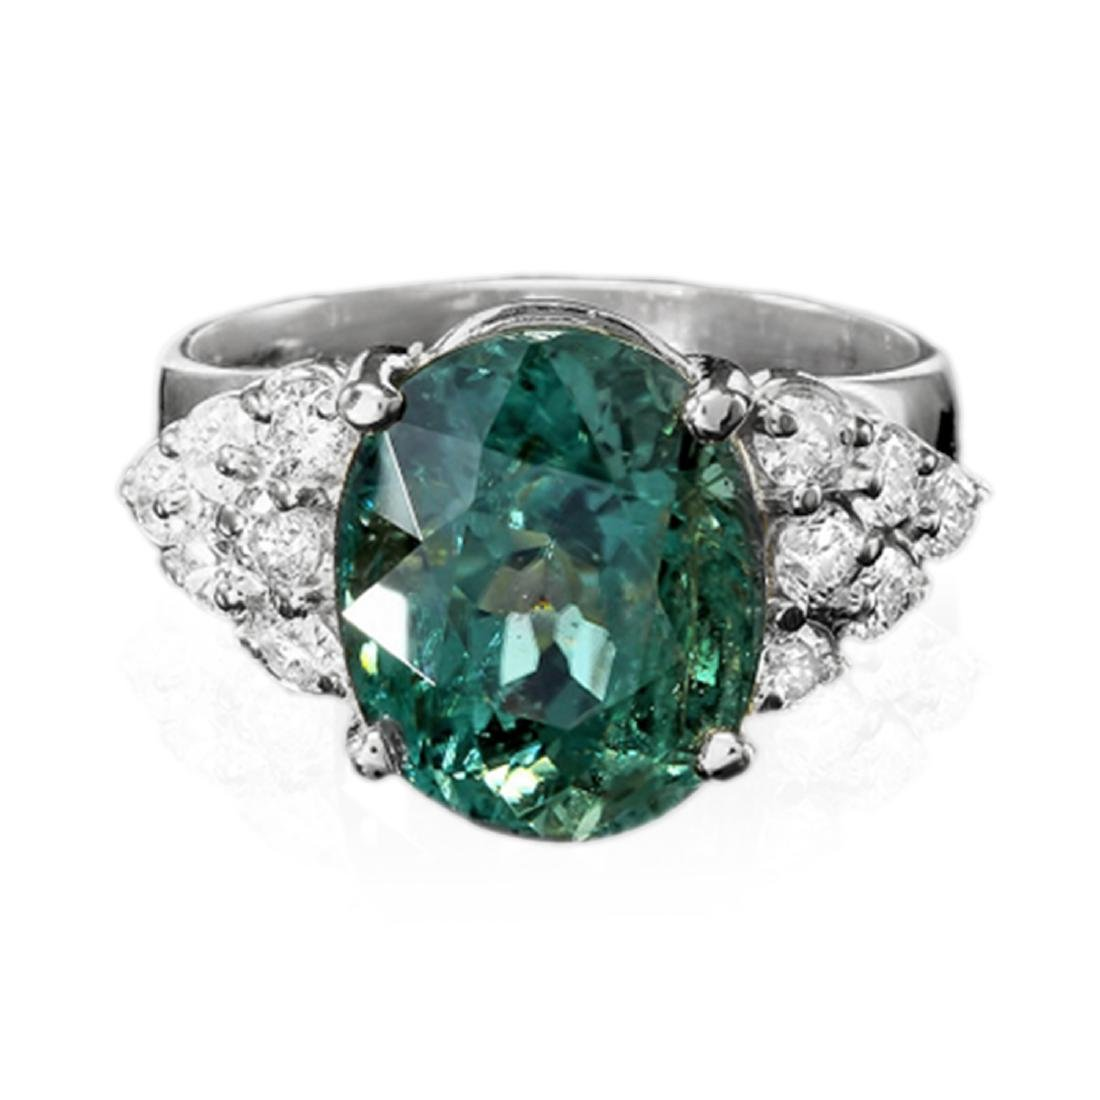 7.40 Carat Natural Tourmaline 18K Solid White Gold